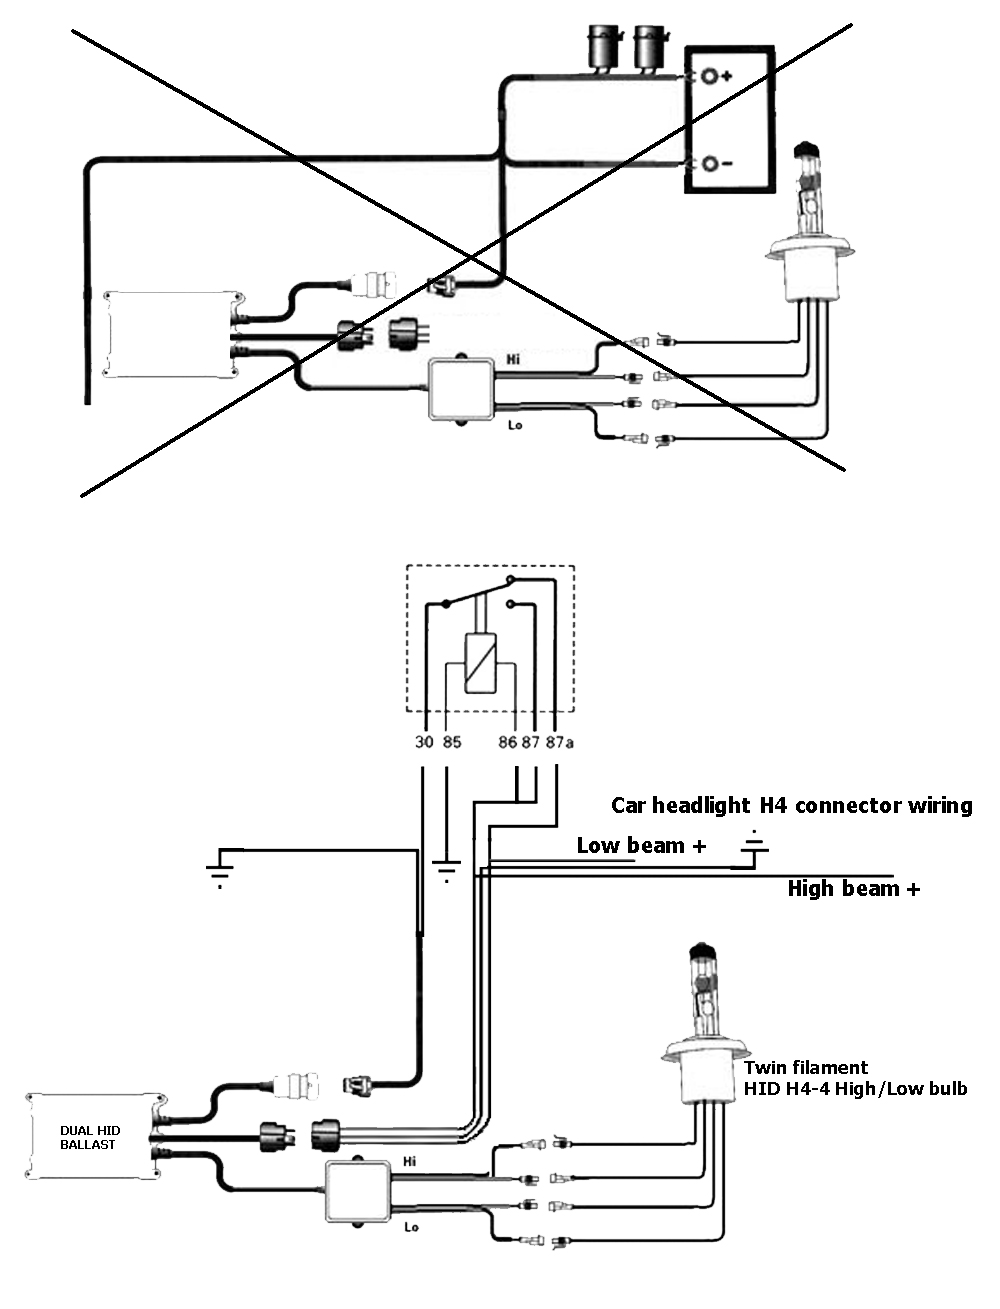 hight resolution of 06 range rover wiring diagram